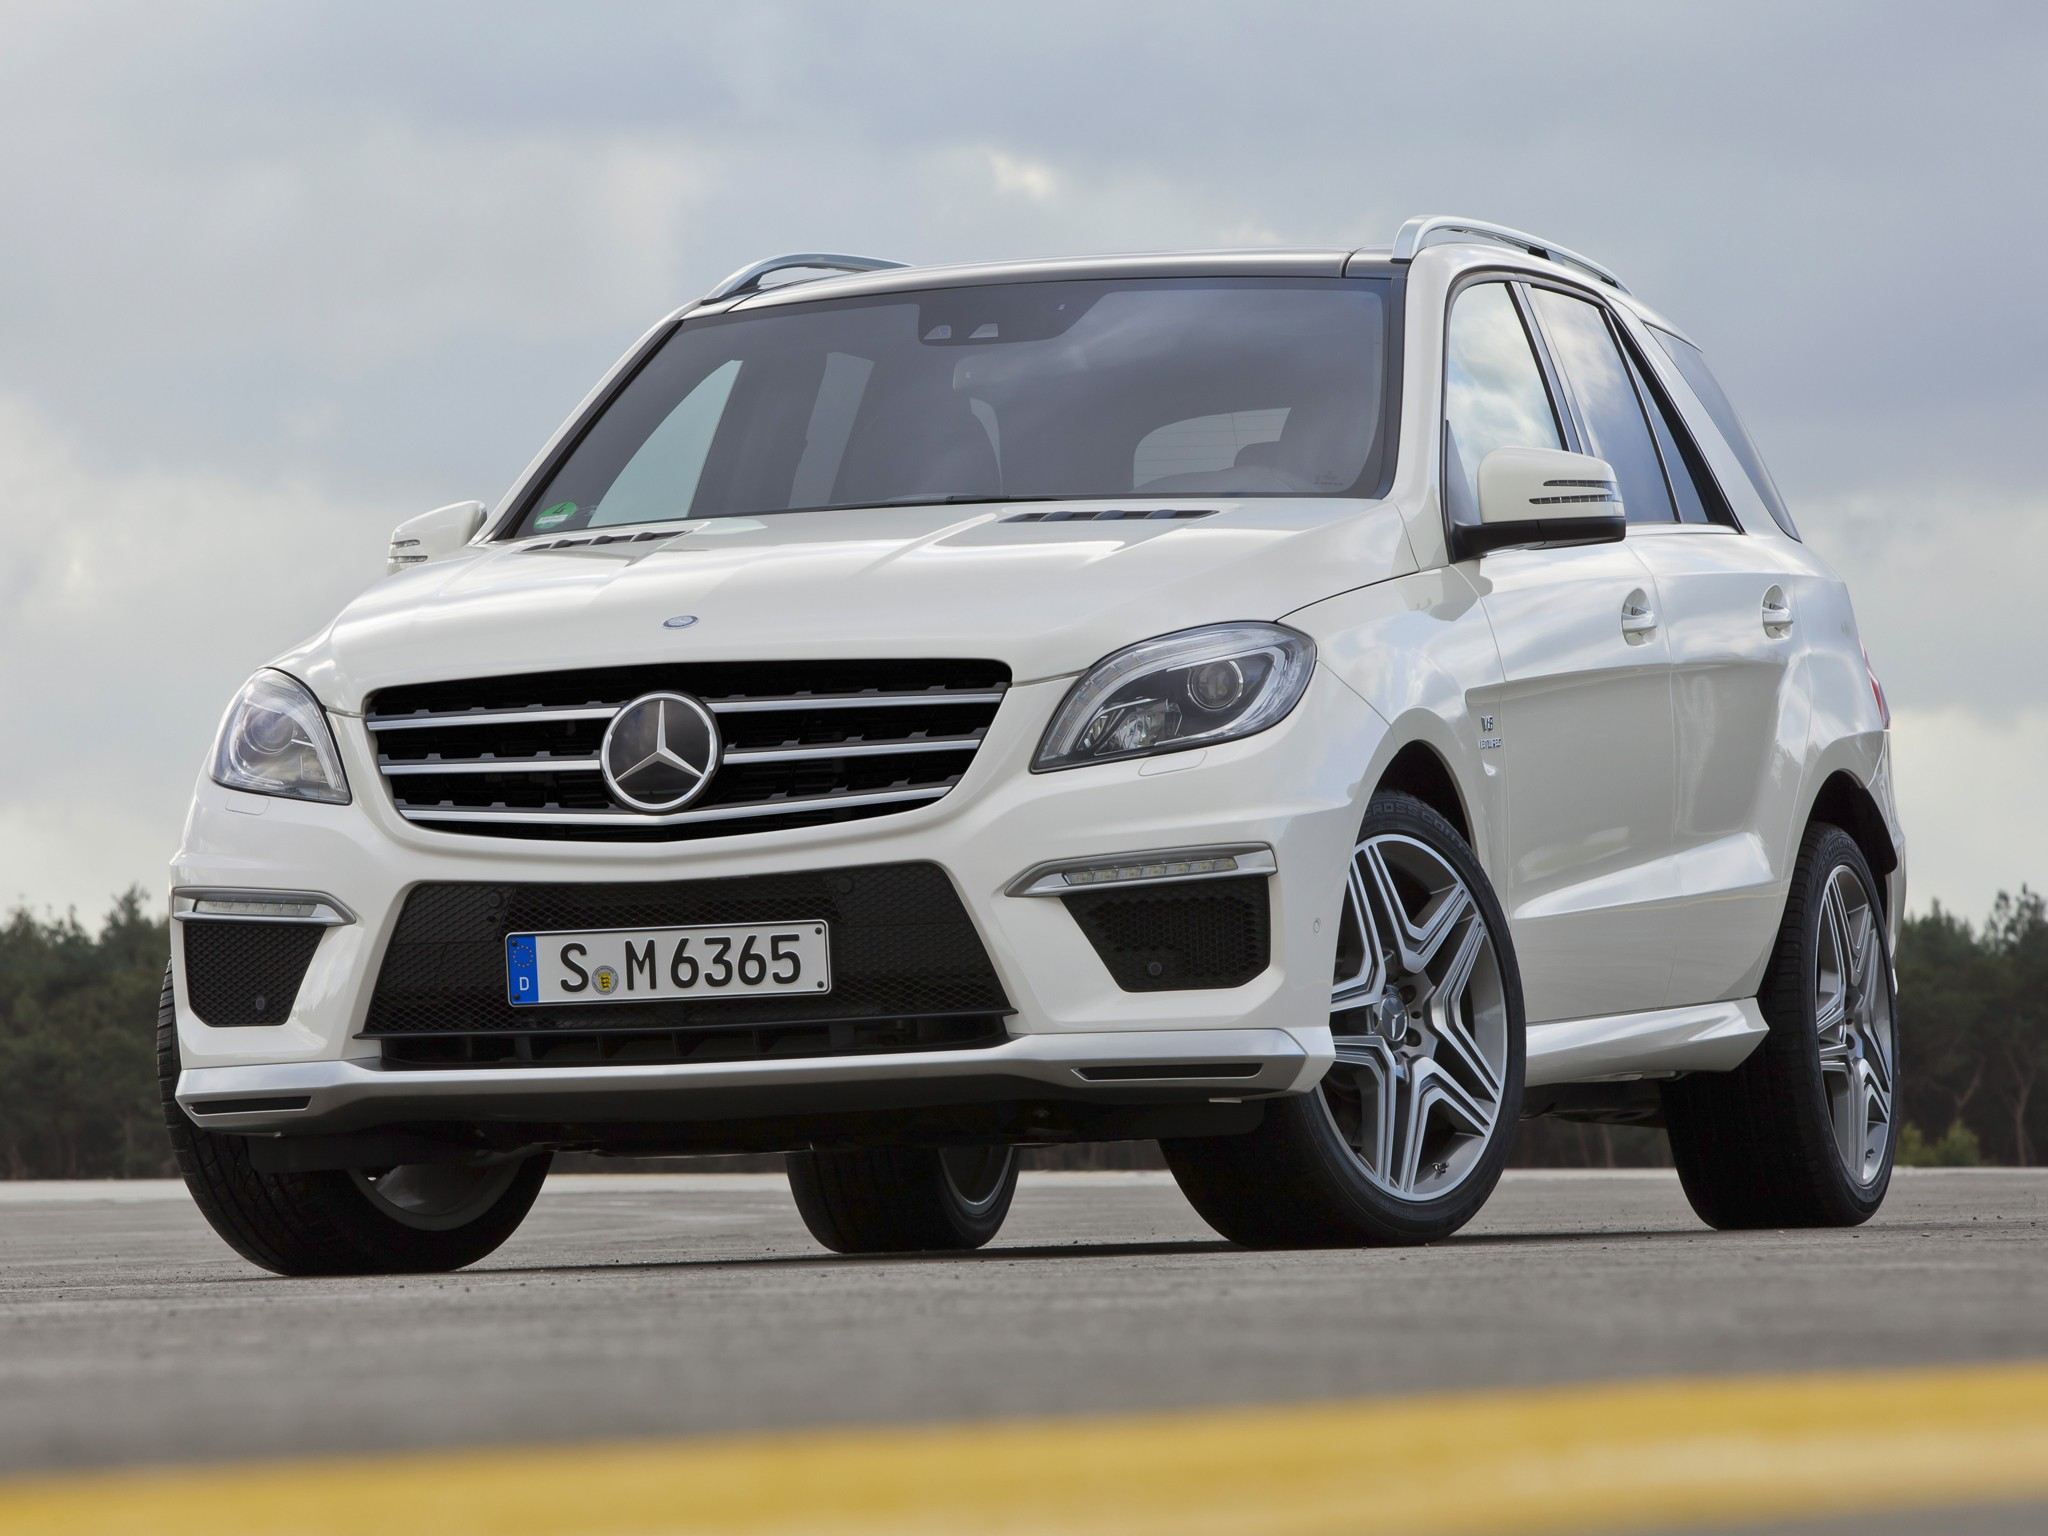 Mercedes benz ml 63 amg w166 specs 2011 2012 2013 for Mercedes benz mclass